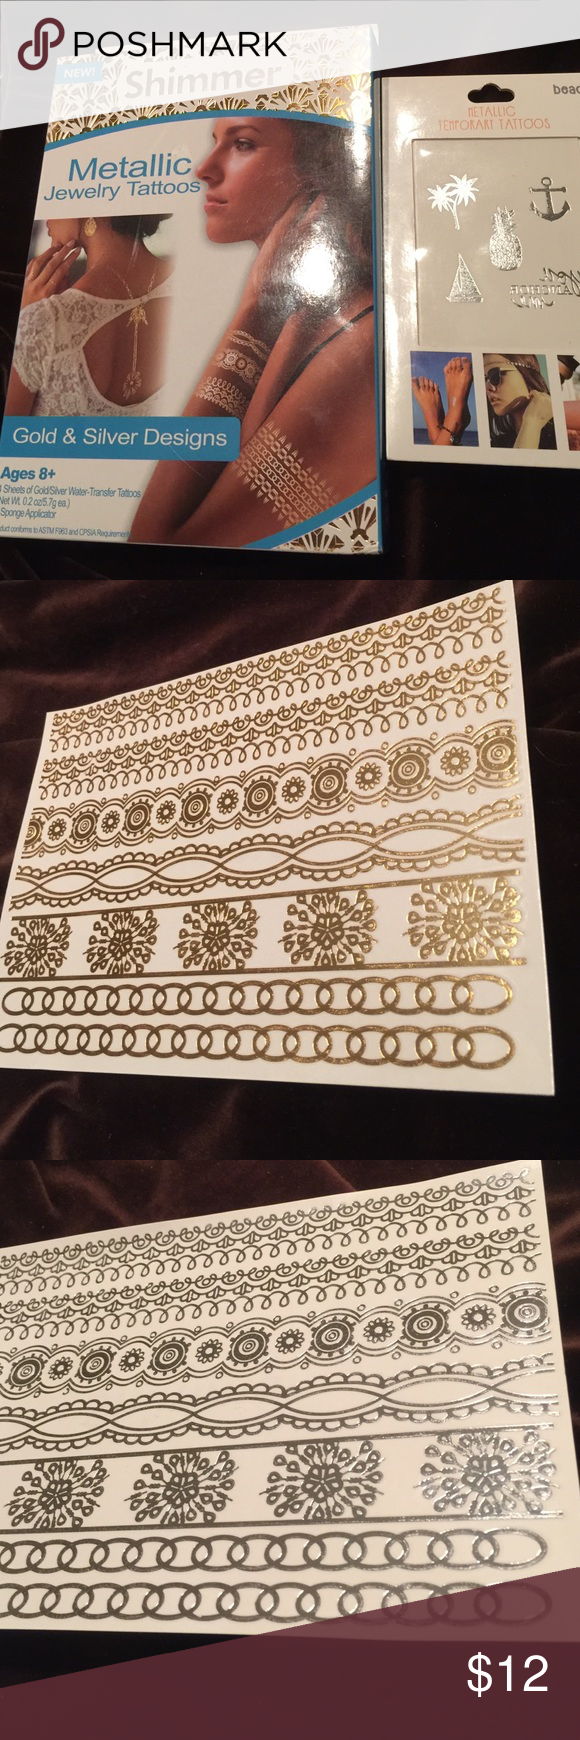 nwt 75 metallic tattoos nwt | d, accessories and shopping